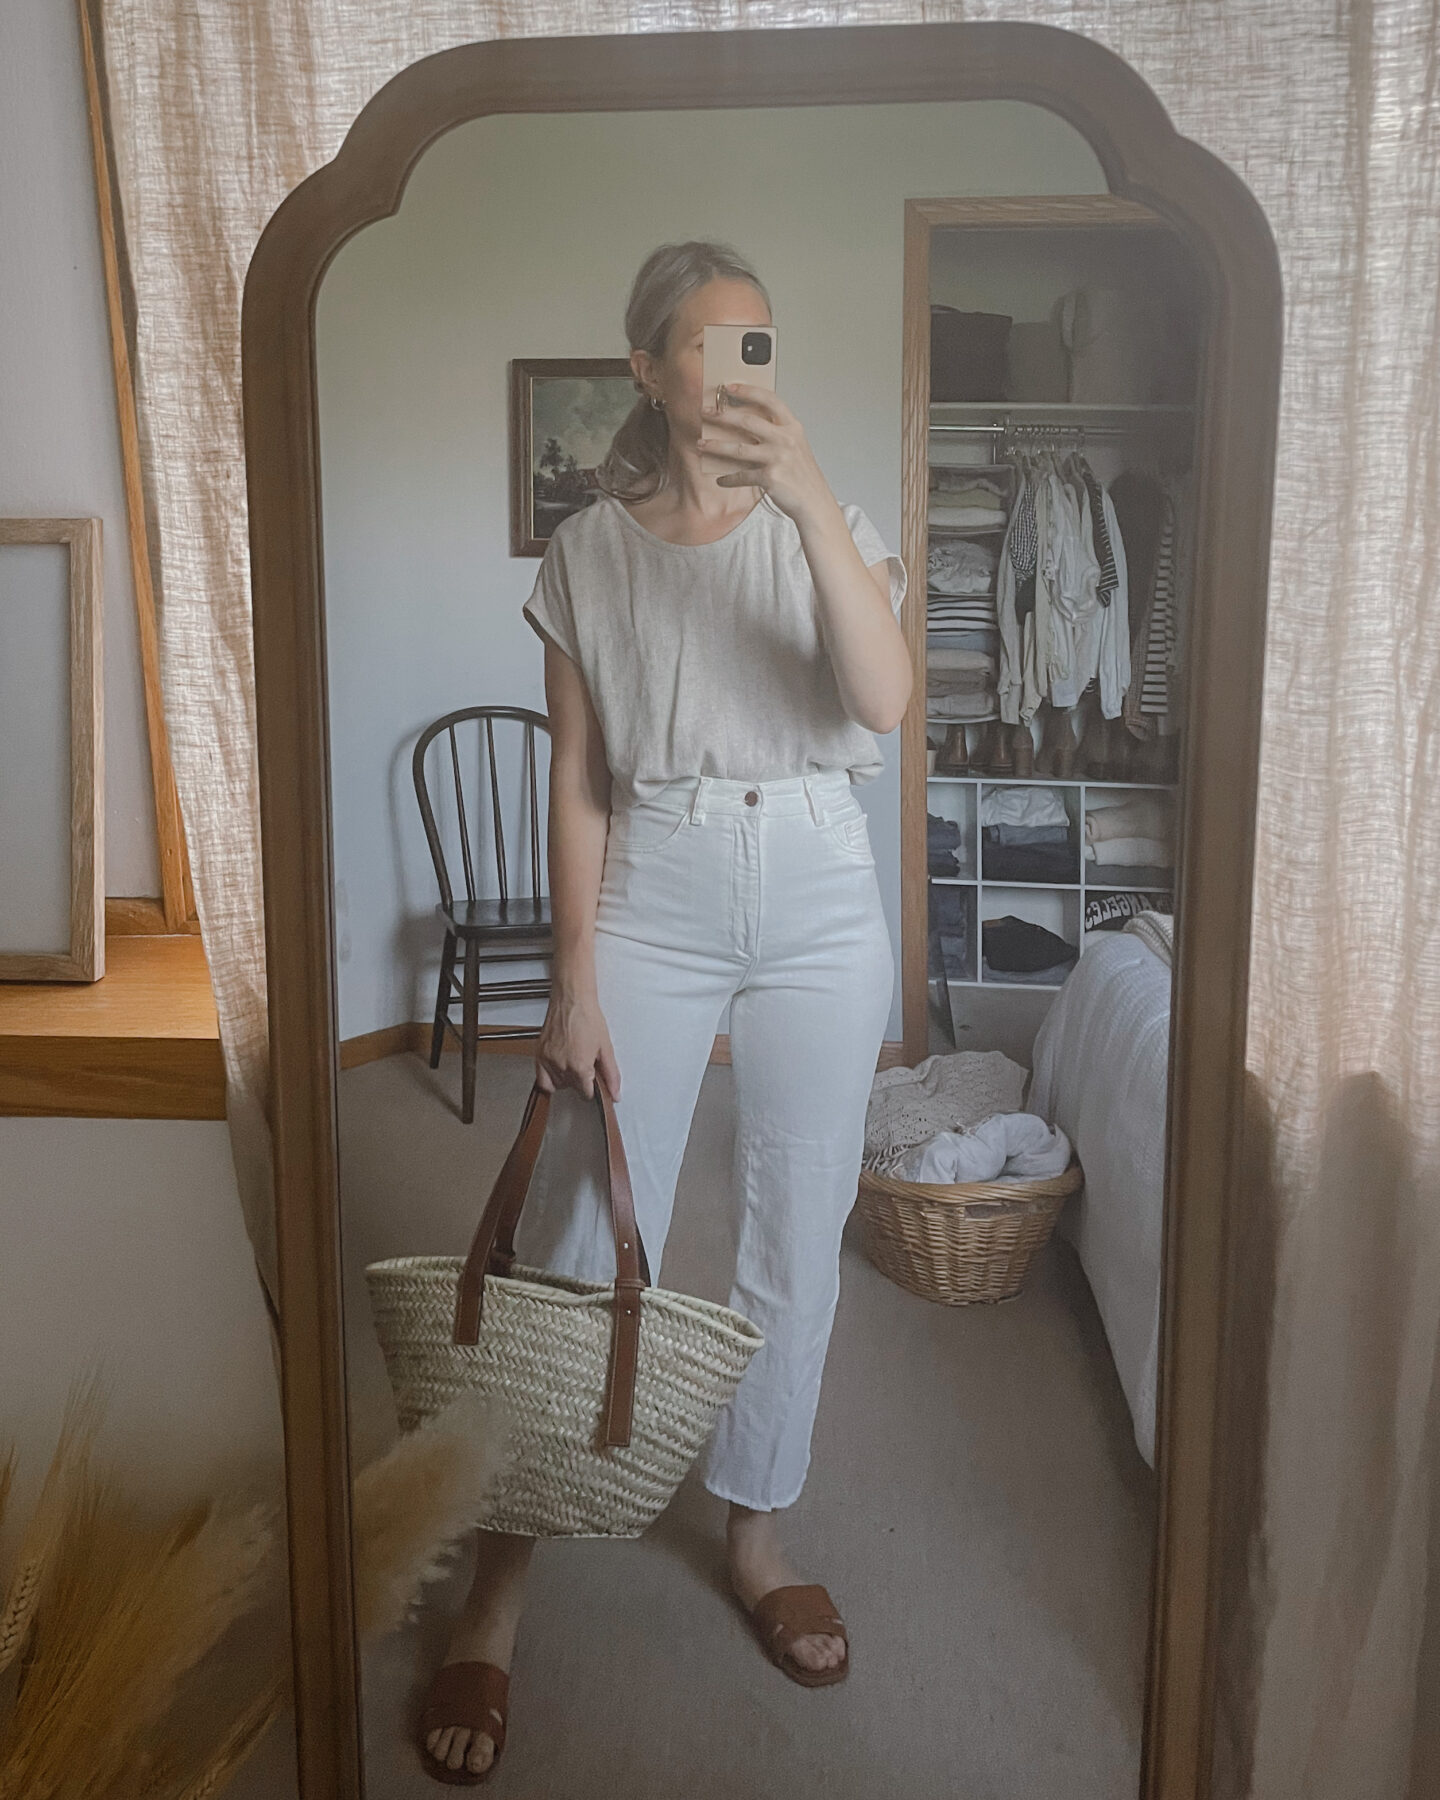 Karin Emily wears a tan shirt tucked into white wide leg jeans, brown slide sandals and a basket bag